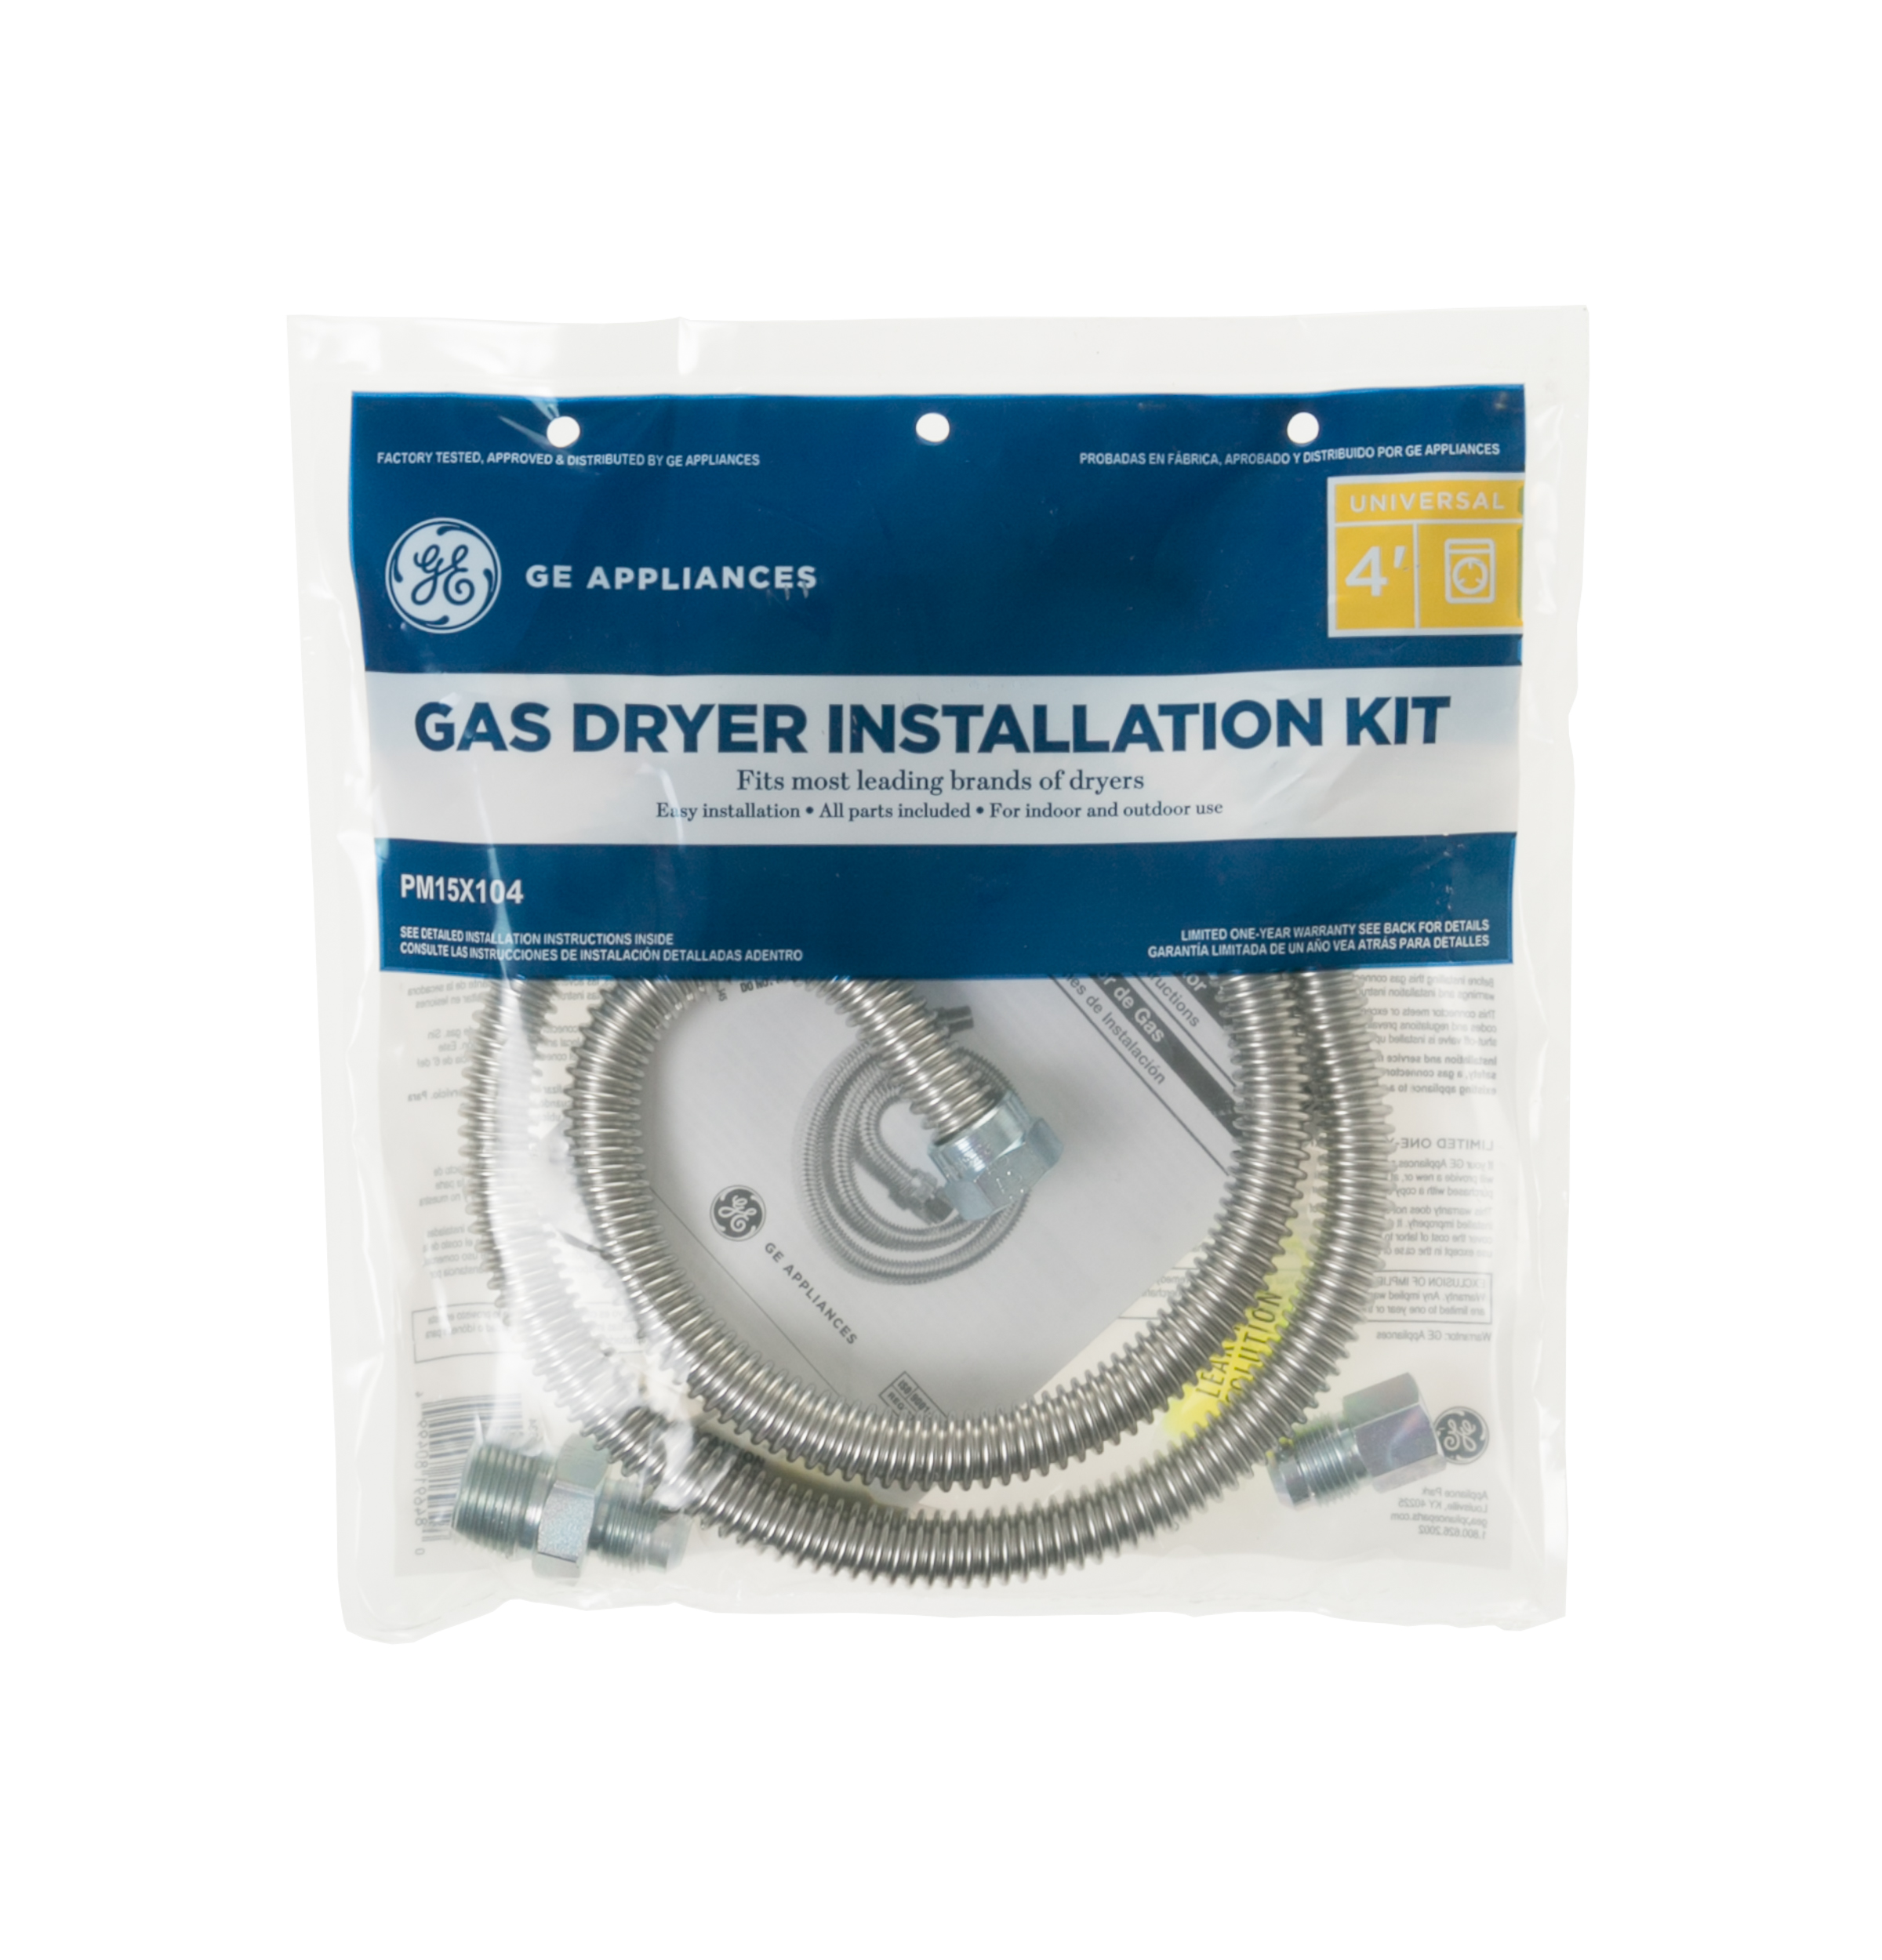 Ge Appliances Service Pm15x104 48 Universal Gas Dryer Install Kit Ge Parts Gas Dryer